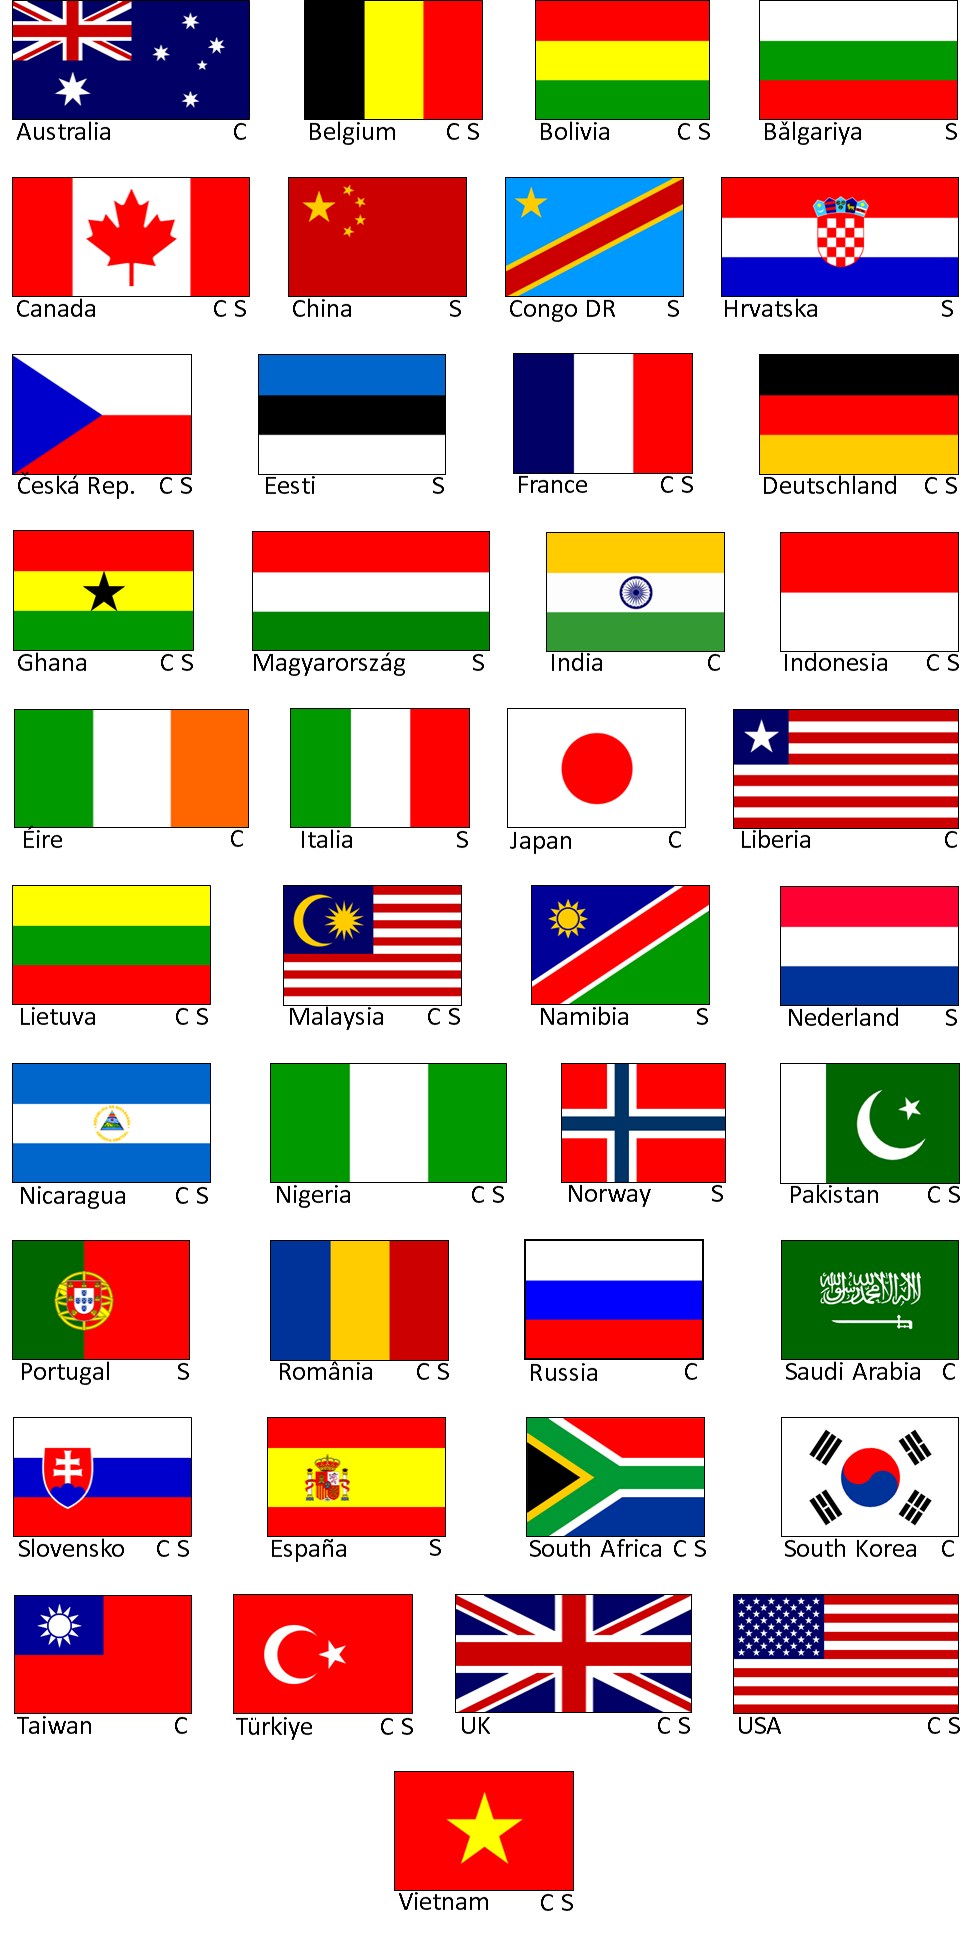 LM1 countries participating